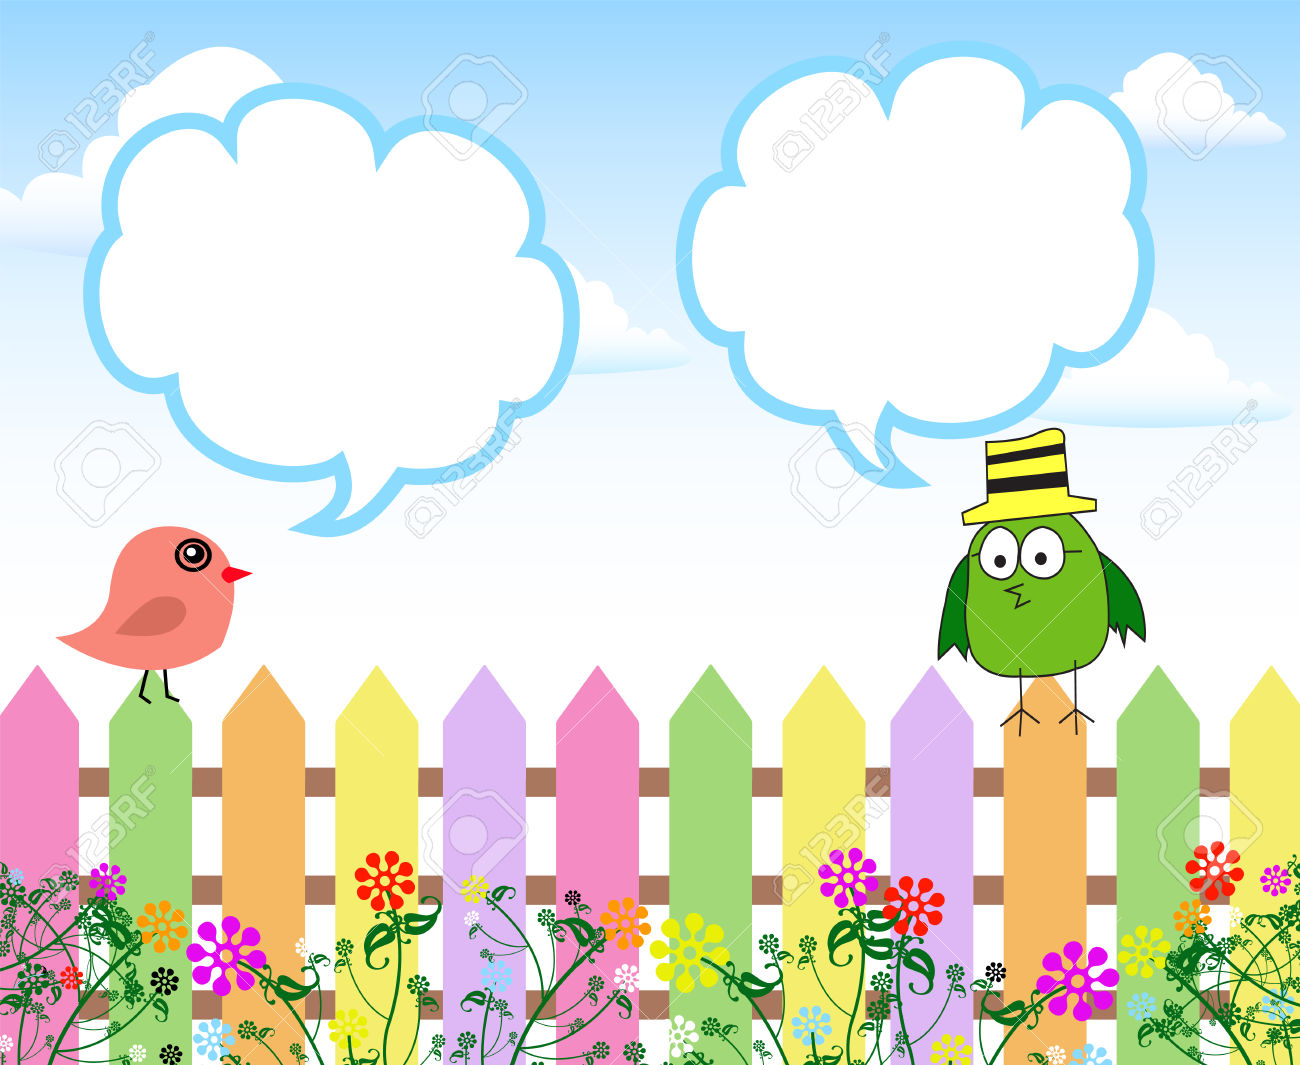 Spring background clipart 20 free Cliparts | Download ...